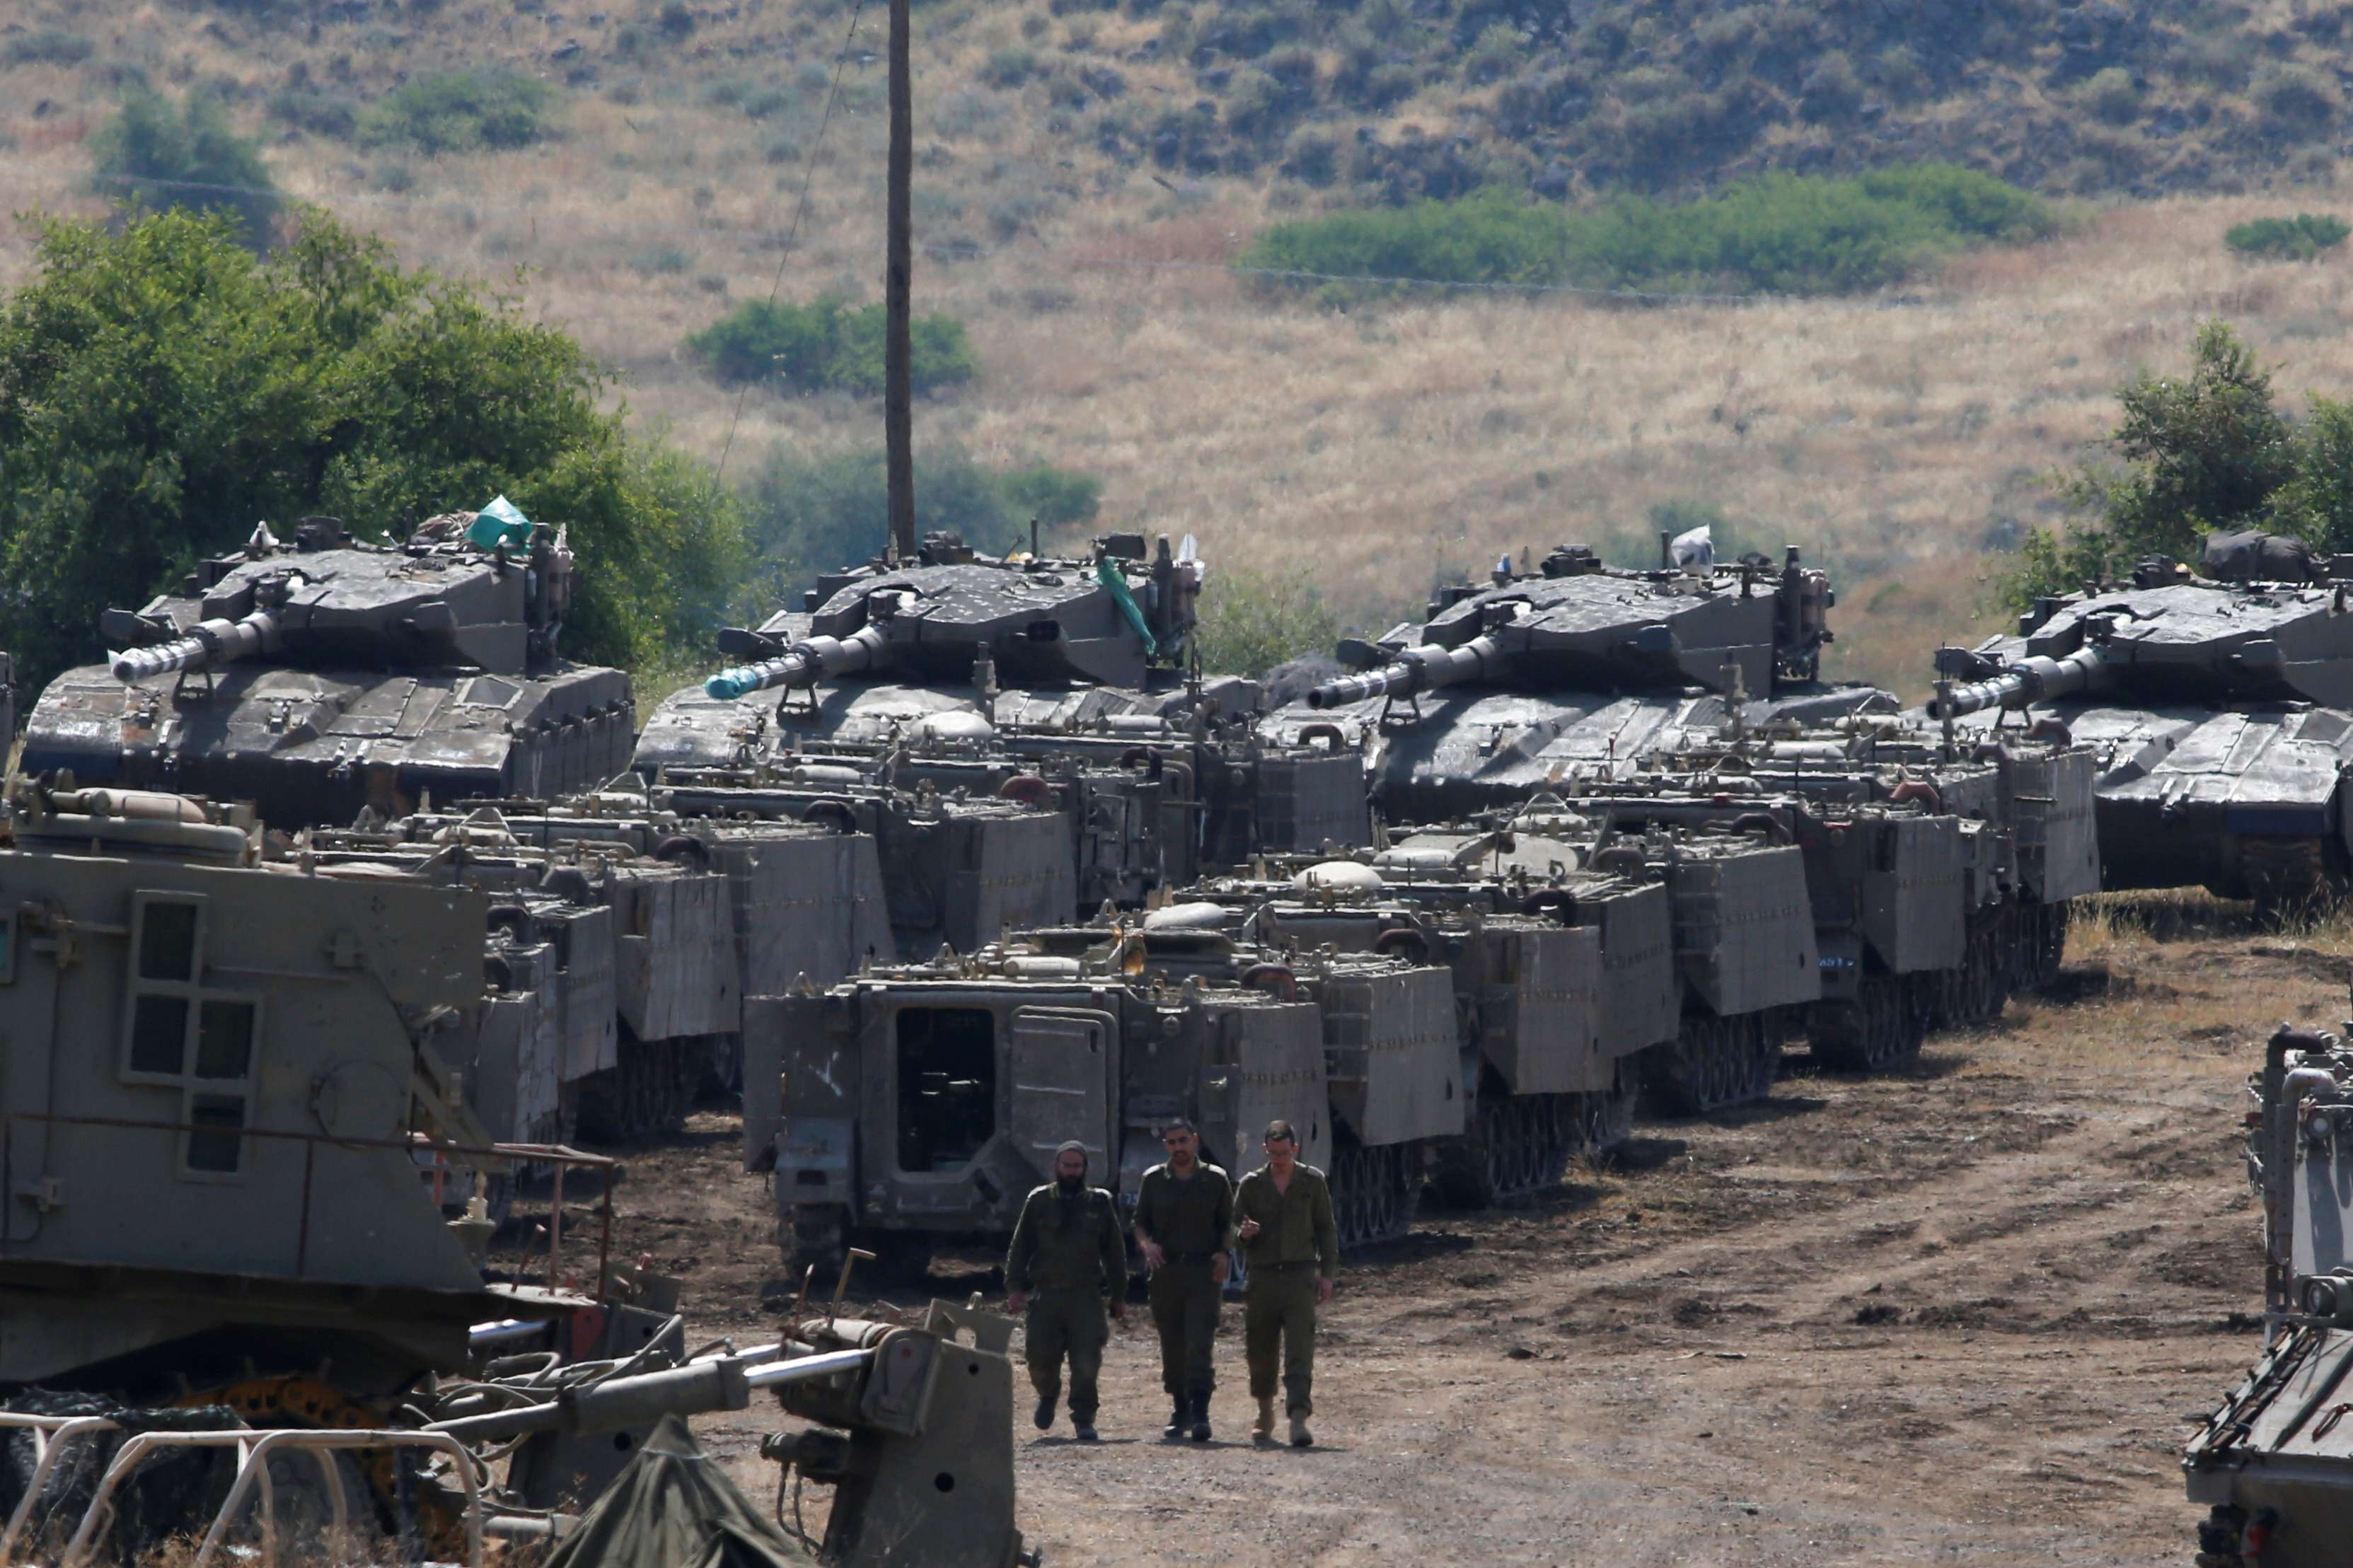 Israeli soldiers walk among armored vehicles in the Israeli-occupied Golan Heights, on May 10. (Reuters)